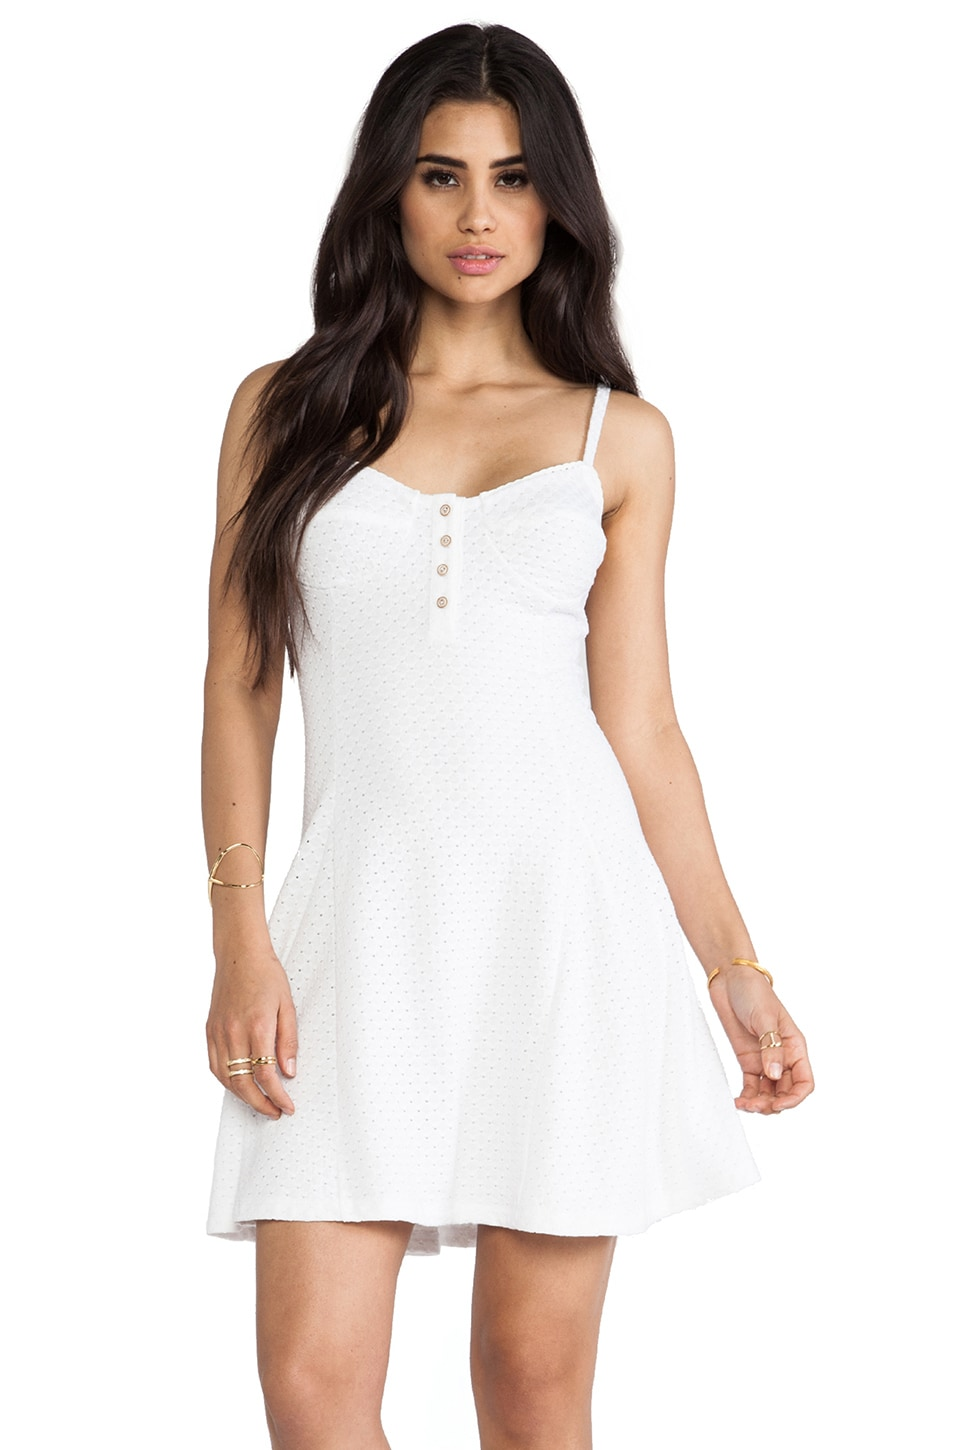 Dolce Vita Diondra Dress in Cream